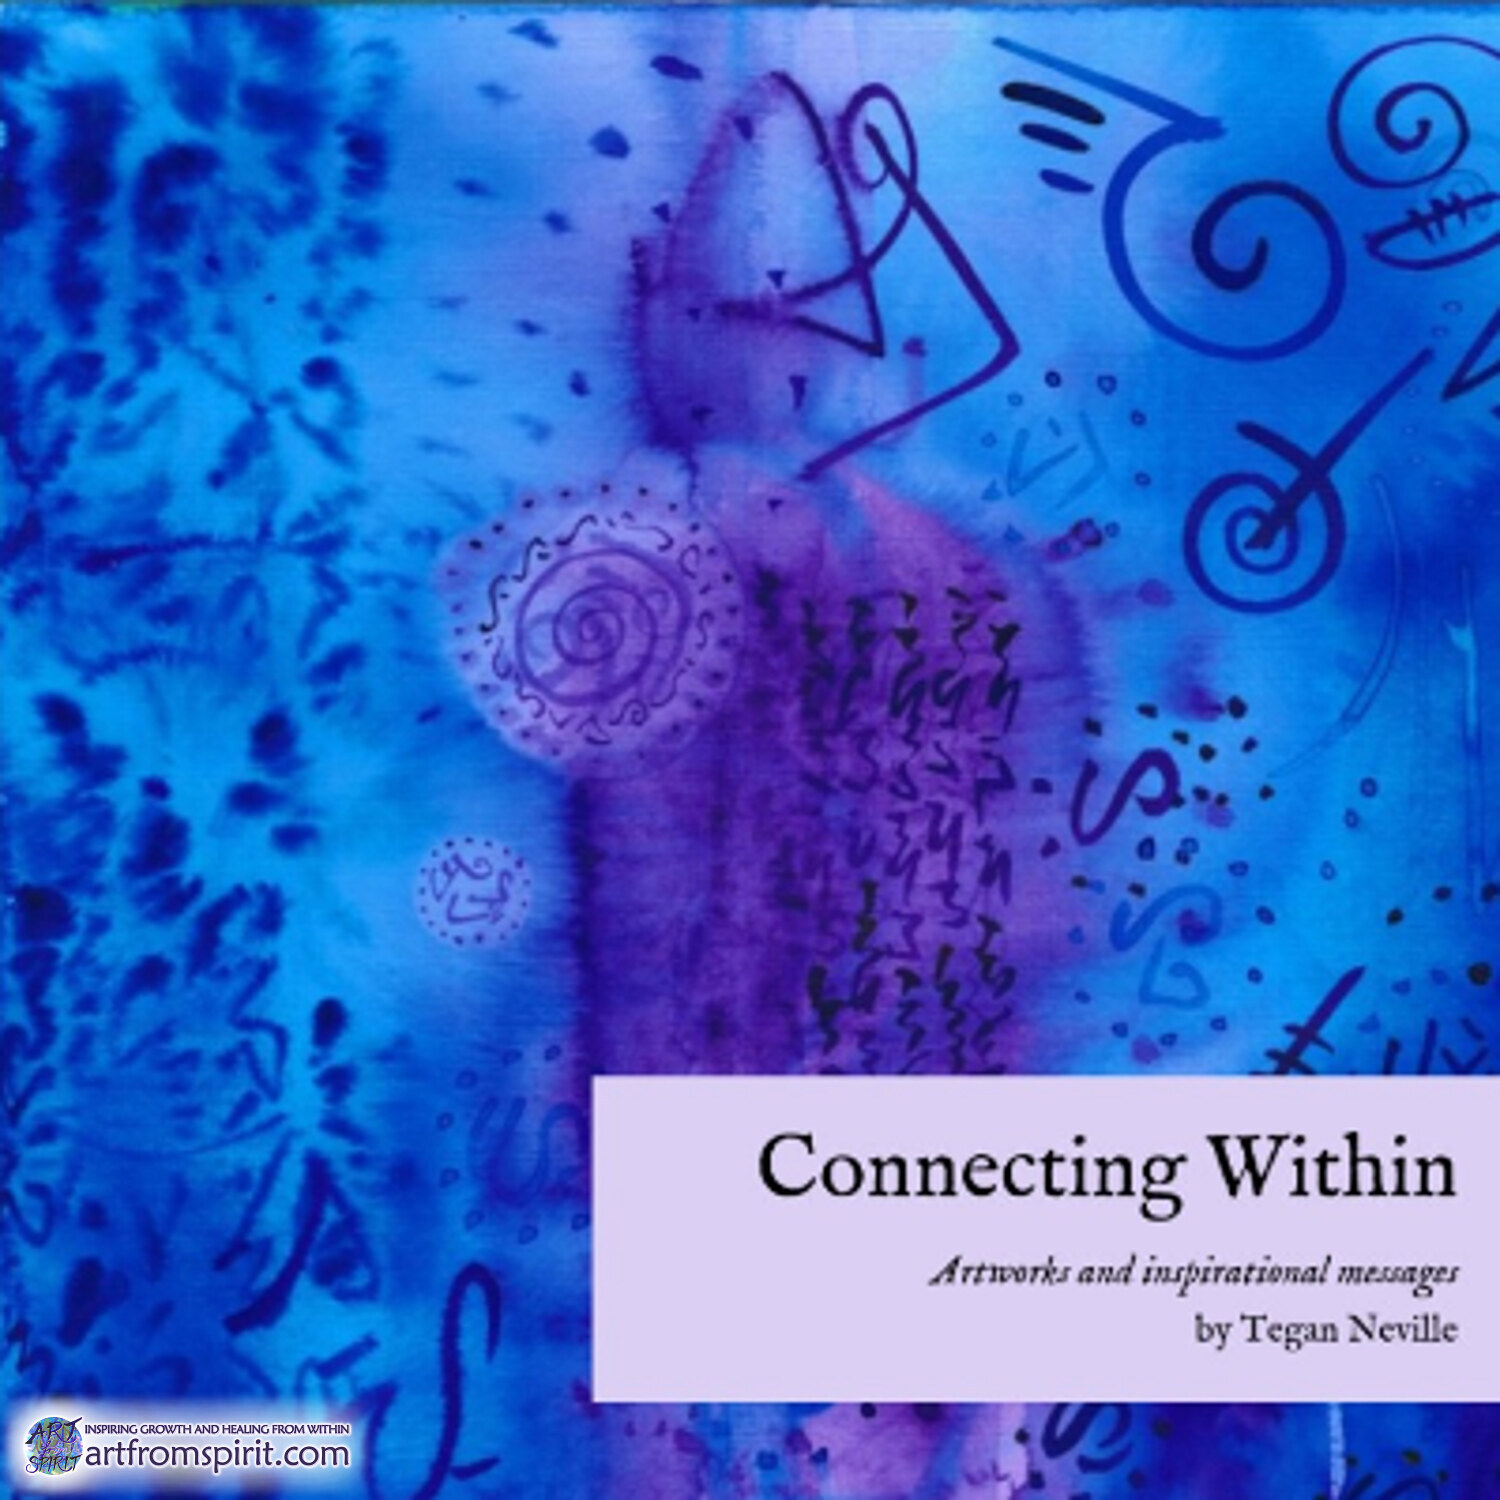 book-connecting-within-art-from-spirit-tegan-neville.jpg